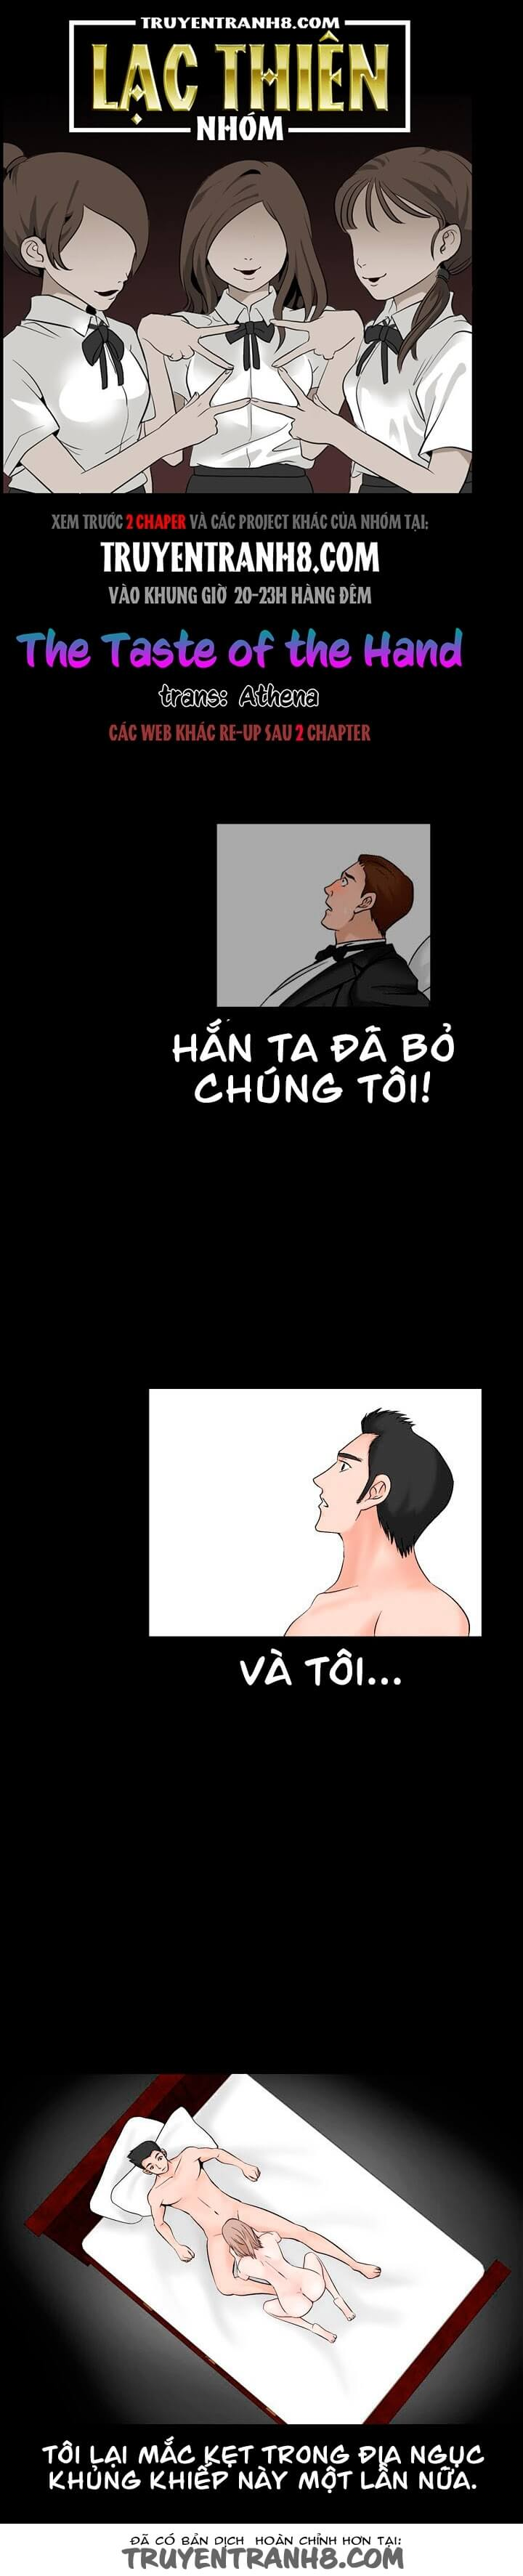 The Taste Of The Hand Chapter 34 - Trang 2